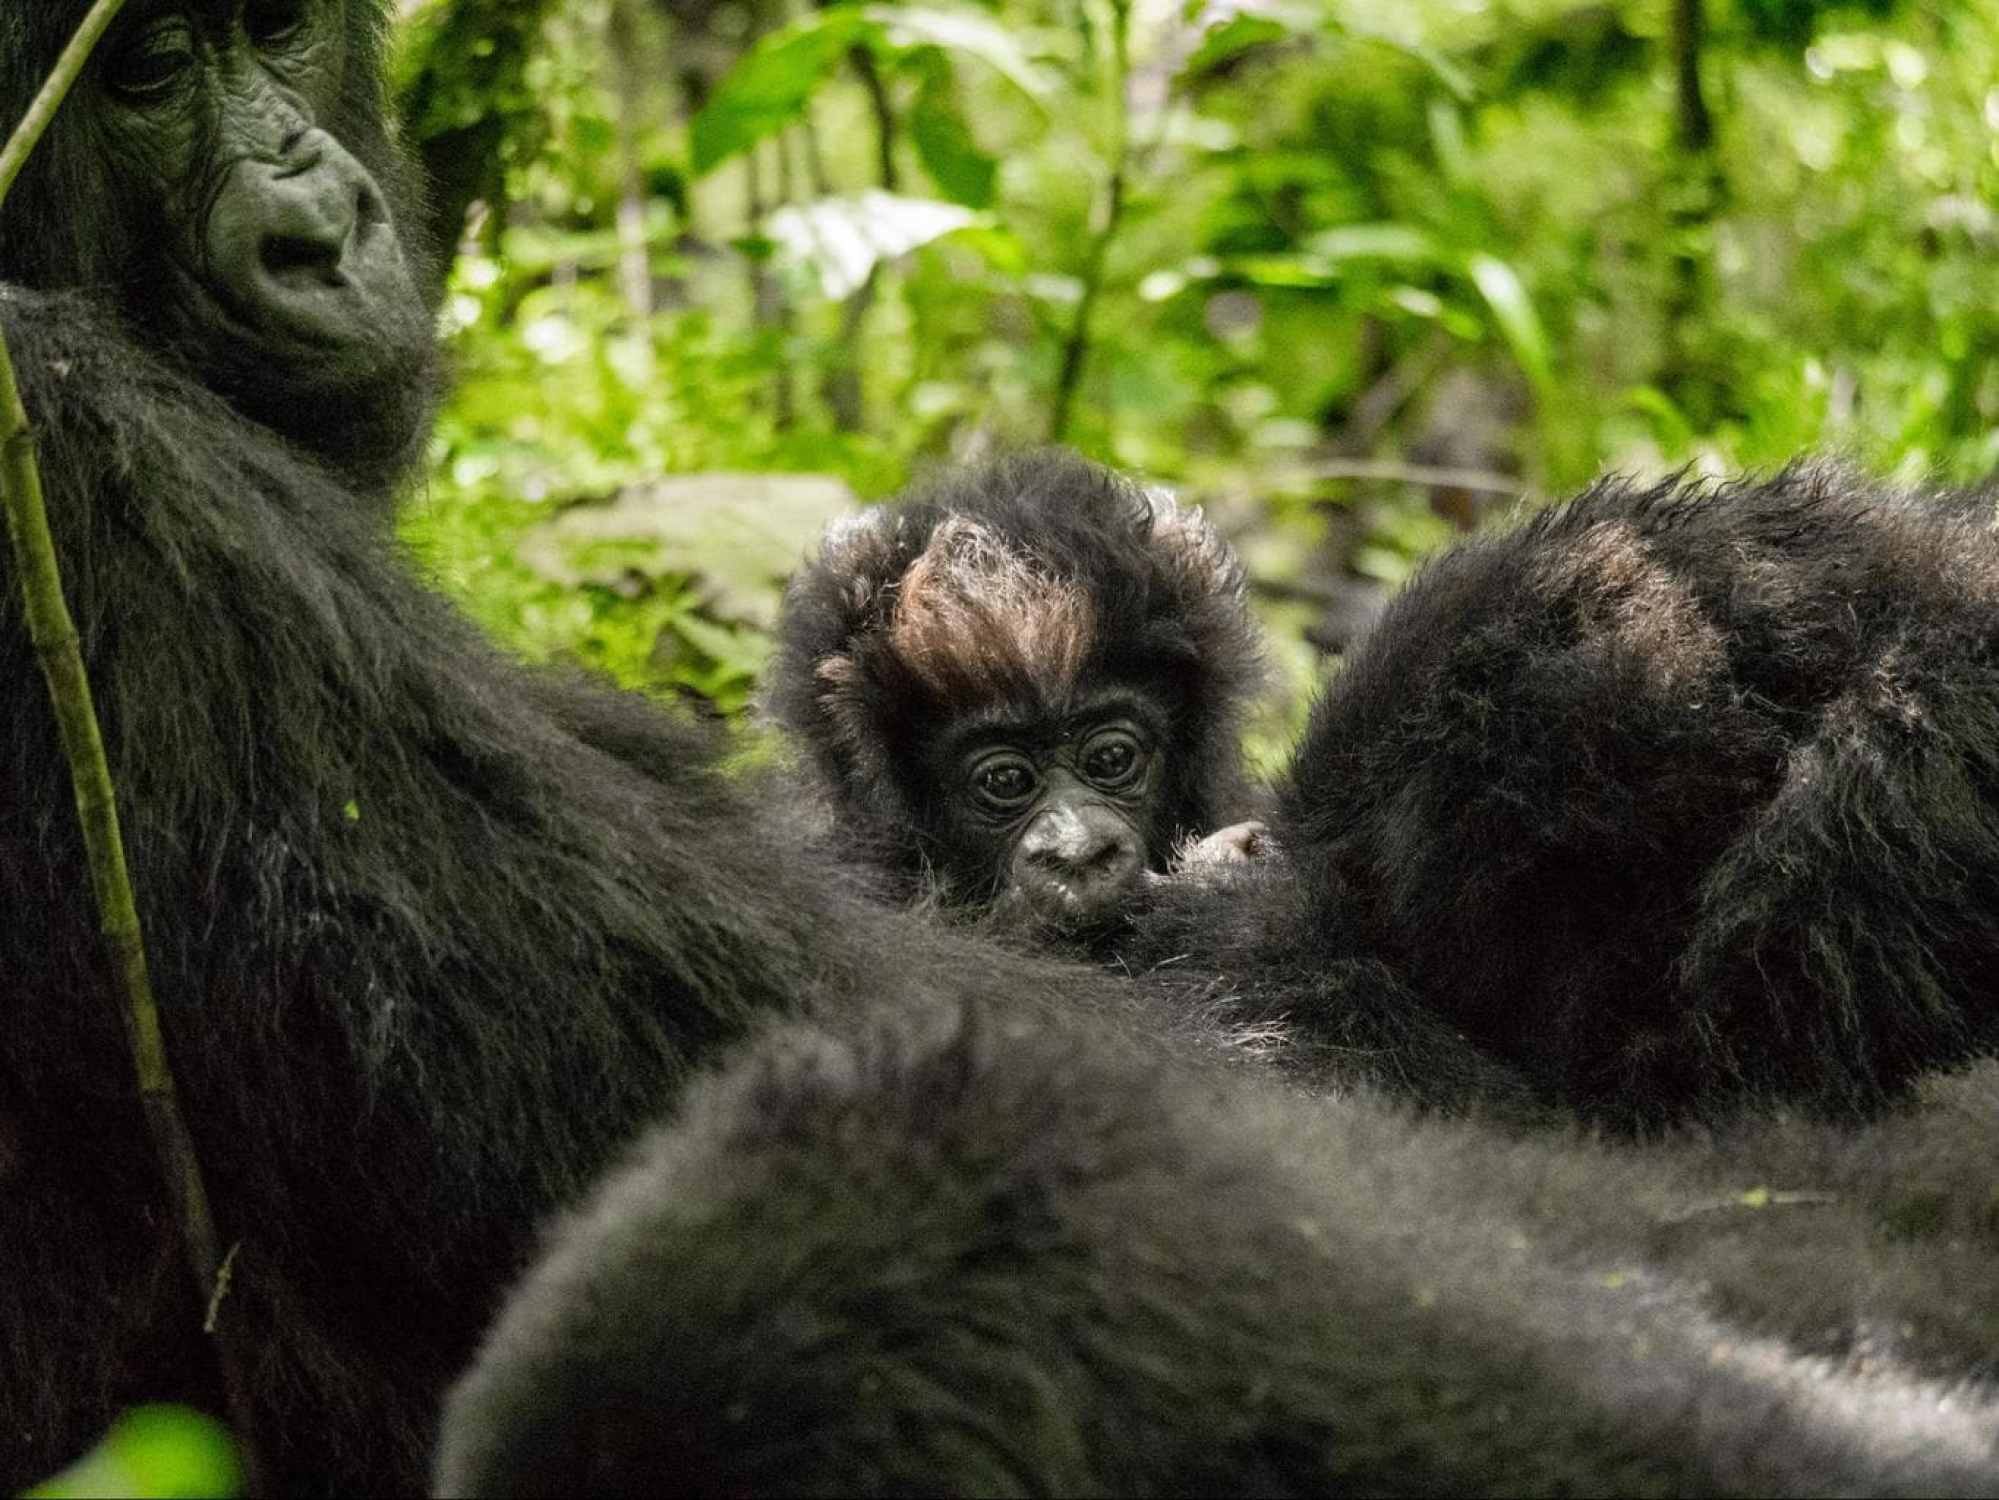 One month old baby gorilla playing with brothers, sisters and mommy